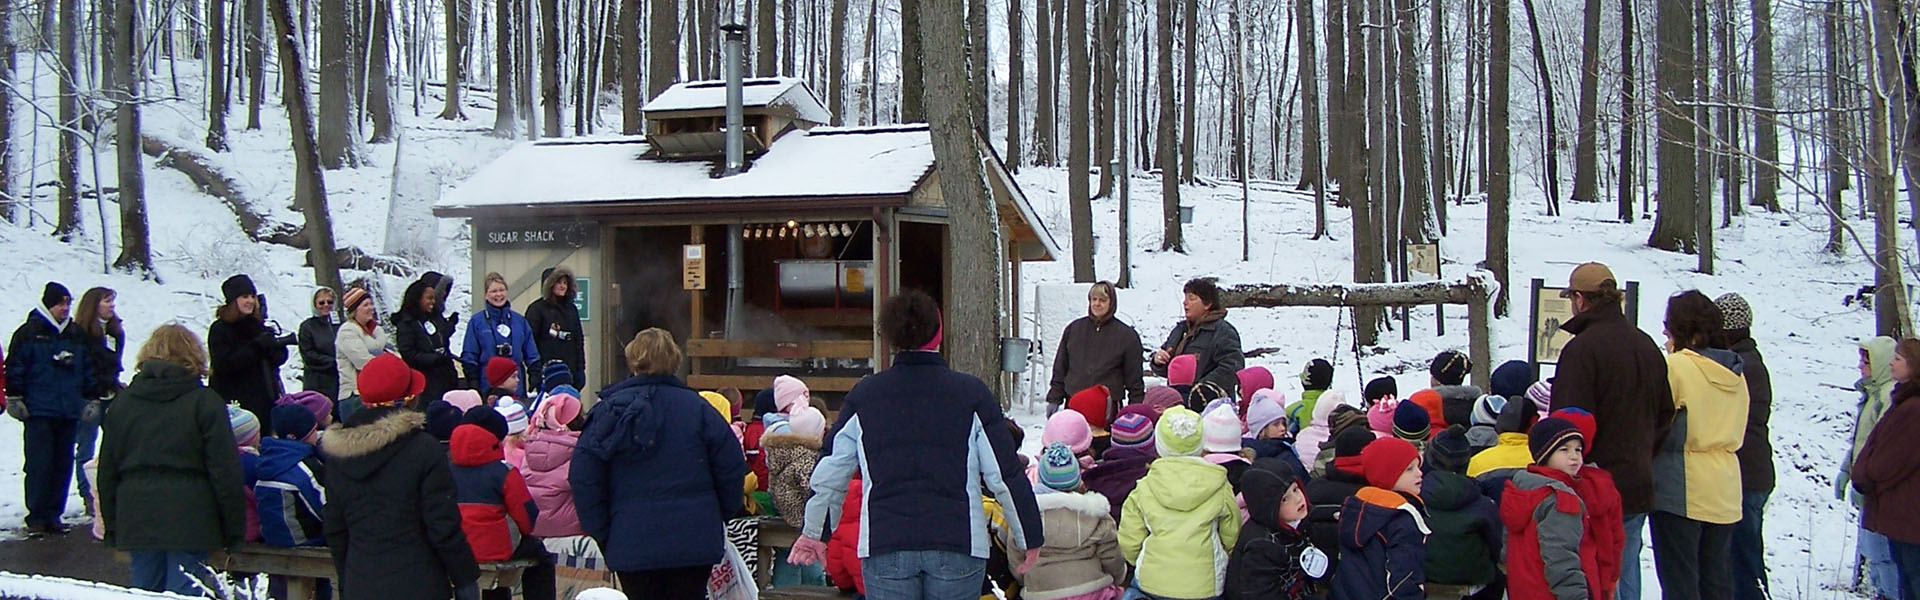 winter nature notes maple sugaring huron clinton metroparks